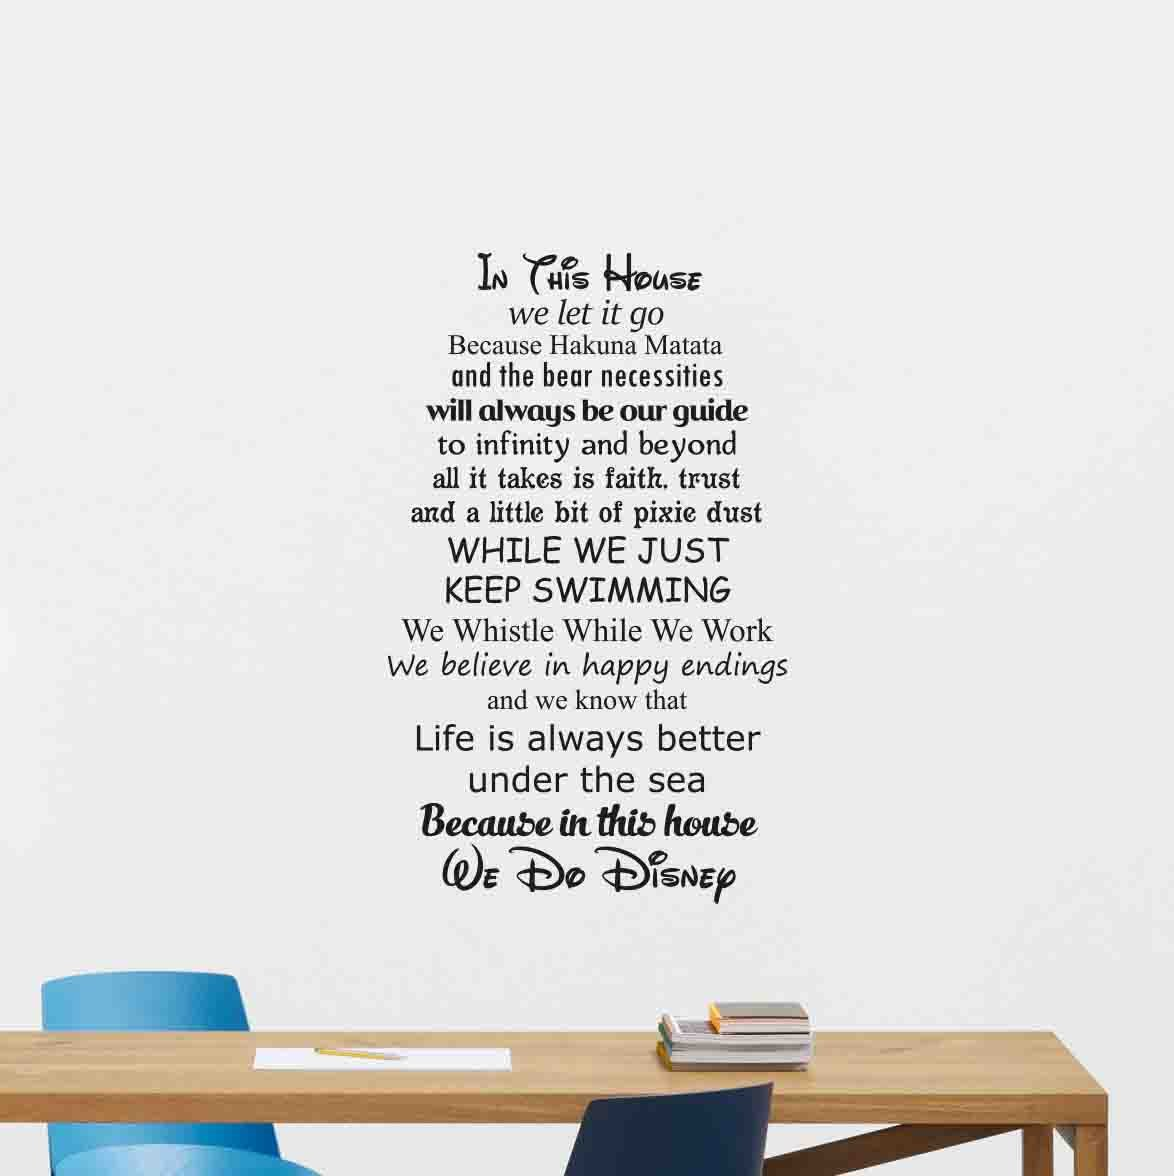 Disney Wall Decal Quote in This House We Do Disney Walt Disney Mickey Mouse Home Bedroom Vinyl Sticker Cartoons Movie Lettering Boy Baby Kids Wall Art Nursery Decor Mural 182crt